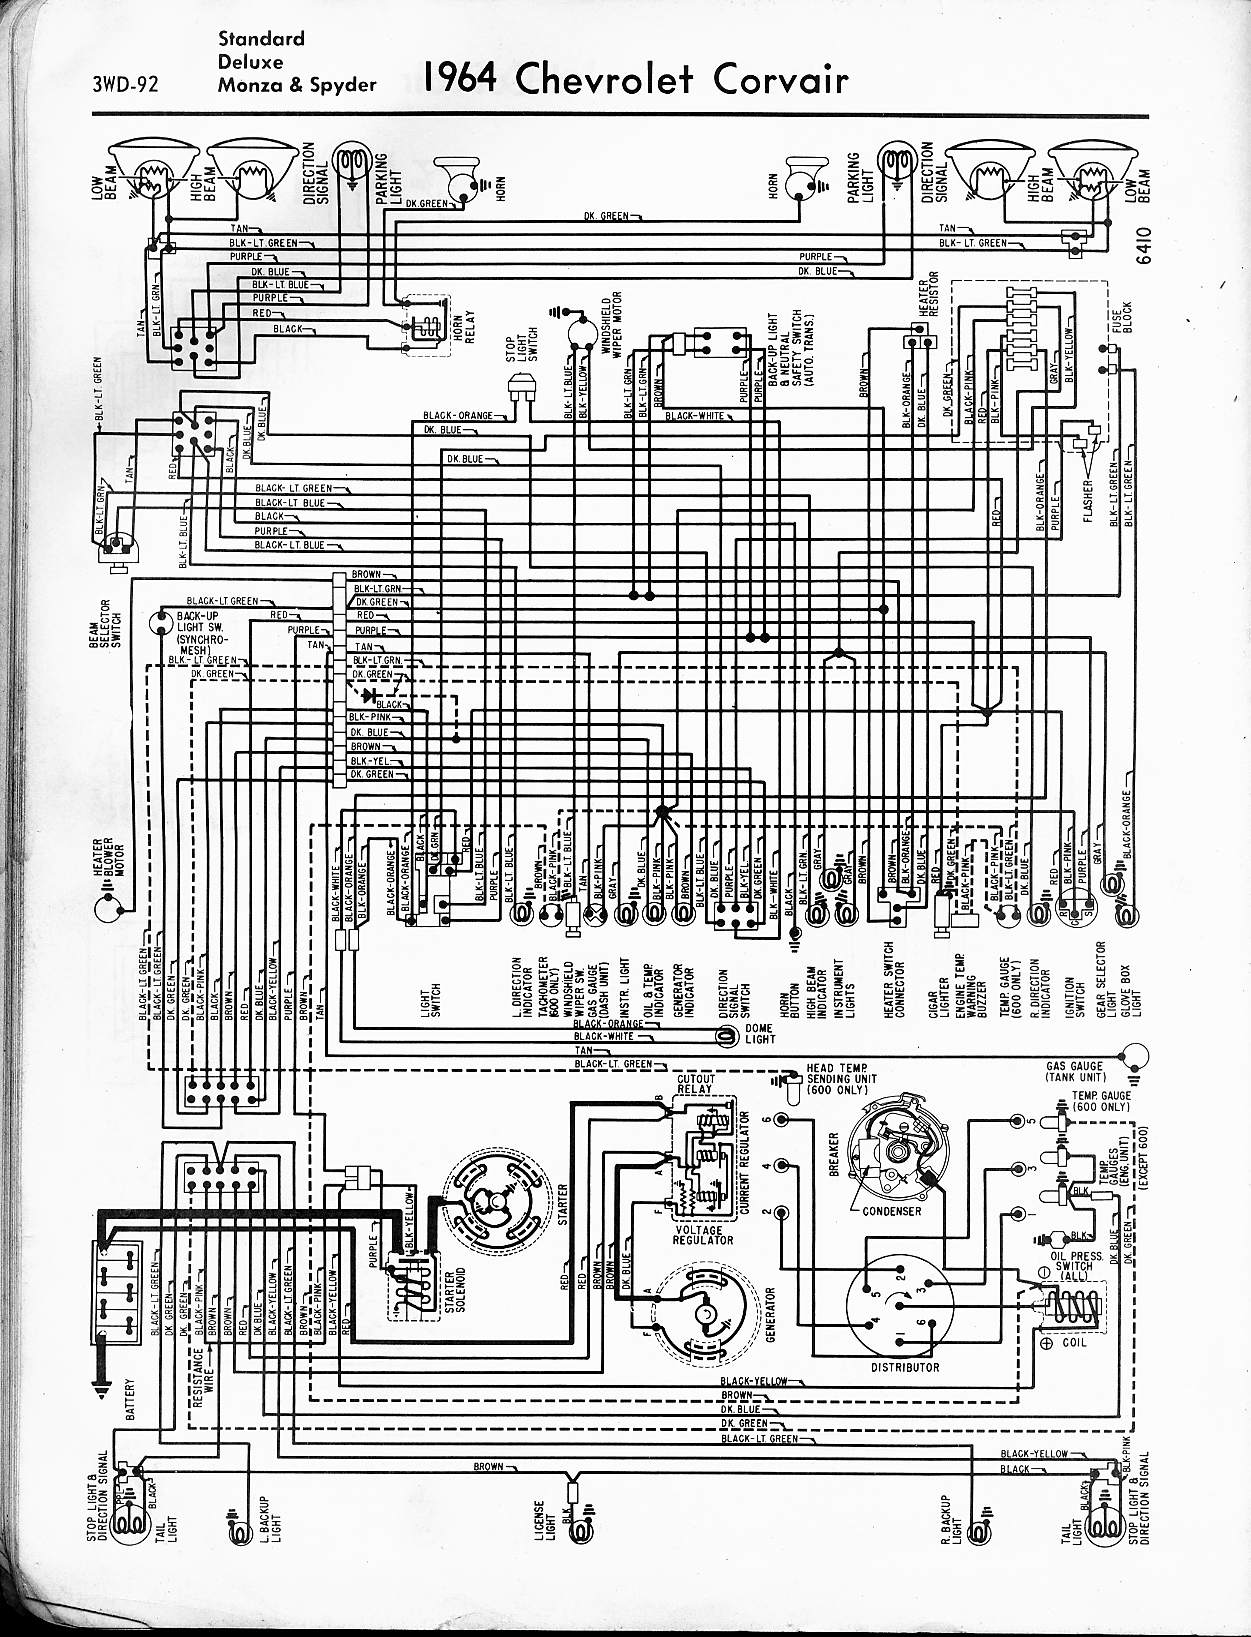 1965 corvair engine wiring diagram bookmark about wiring diagram • 1964 corvair wiring diagram wiring diagram for you u2022 rh four designenvy co wiring diagram 1965 corvair corsa 1965 corvair wiring harness